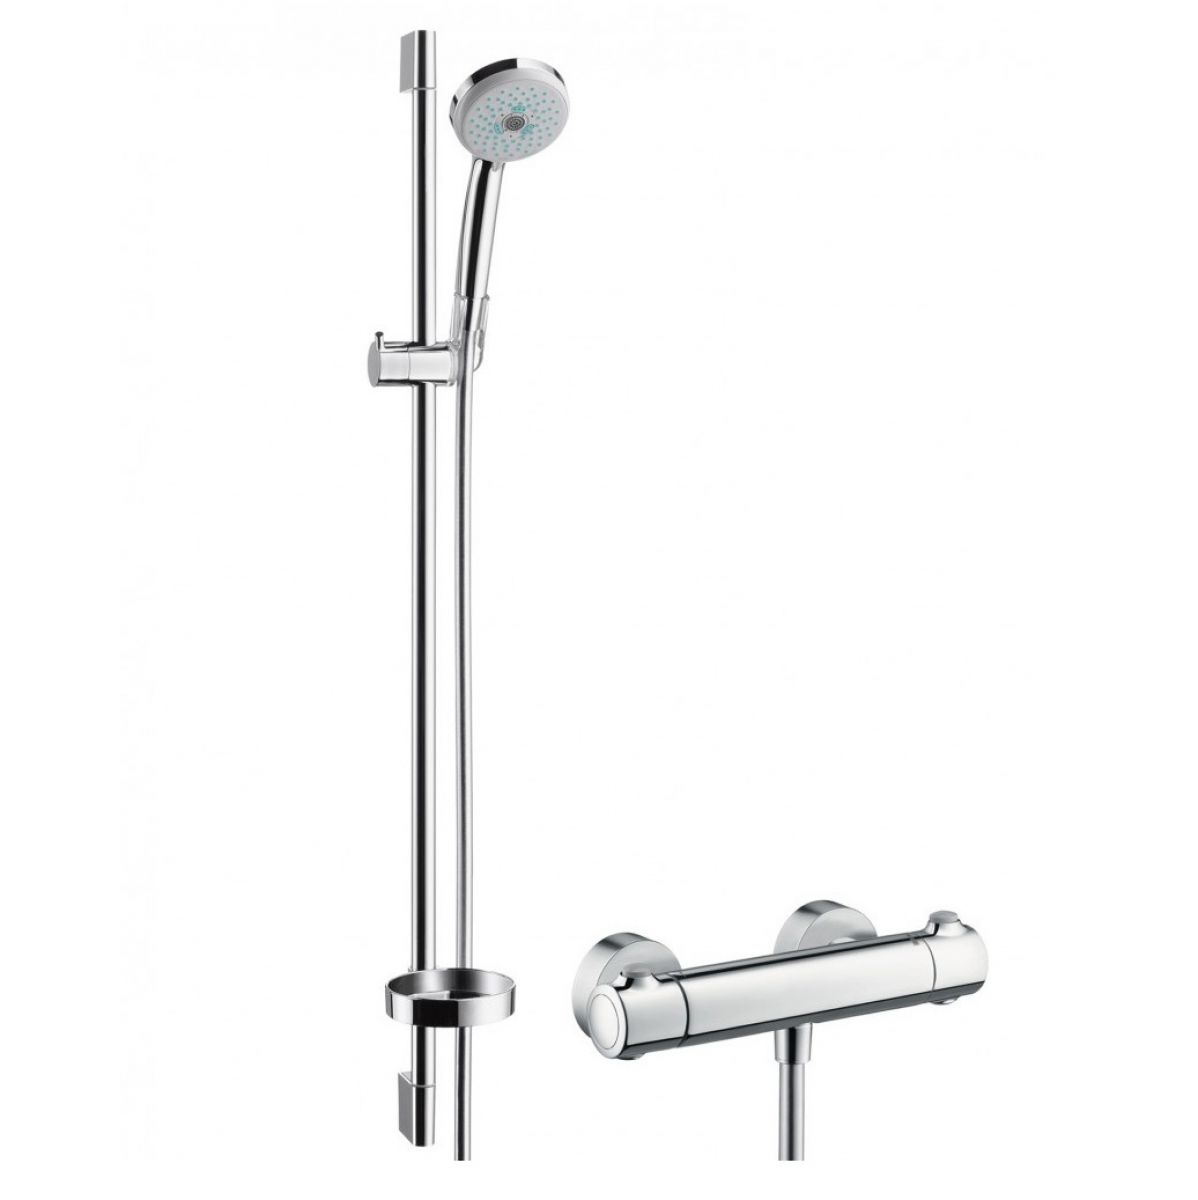 hansgrohe croma 100 multi ecostat 1001 sl shower set. Black Bedroom Furniture Sets. Home Design Ideas